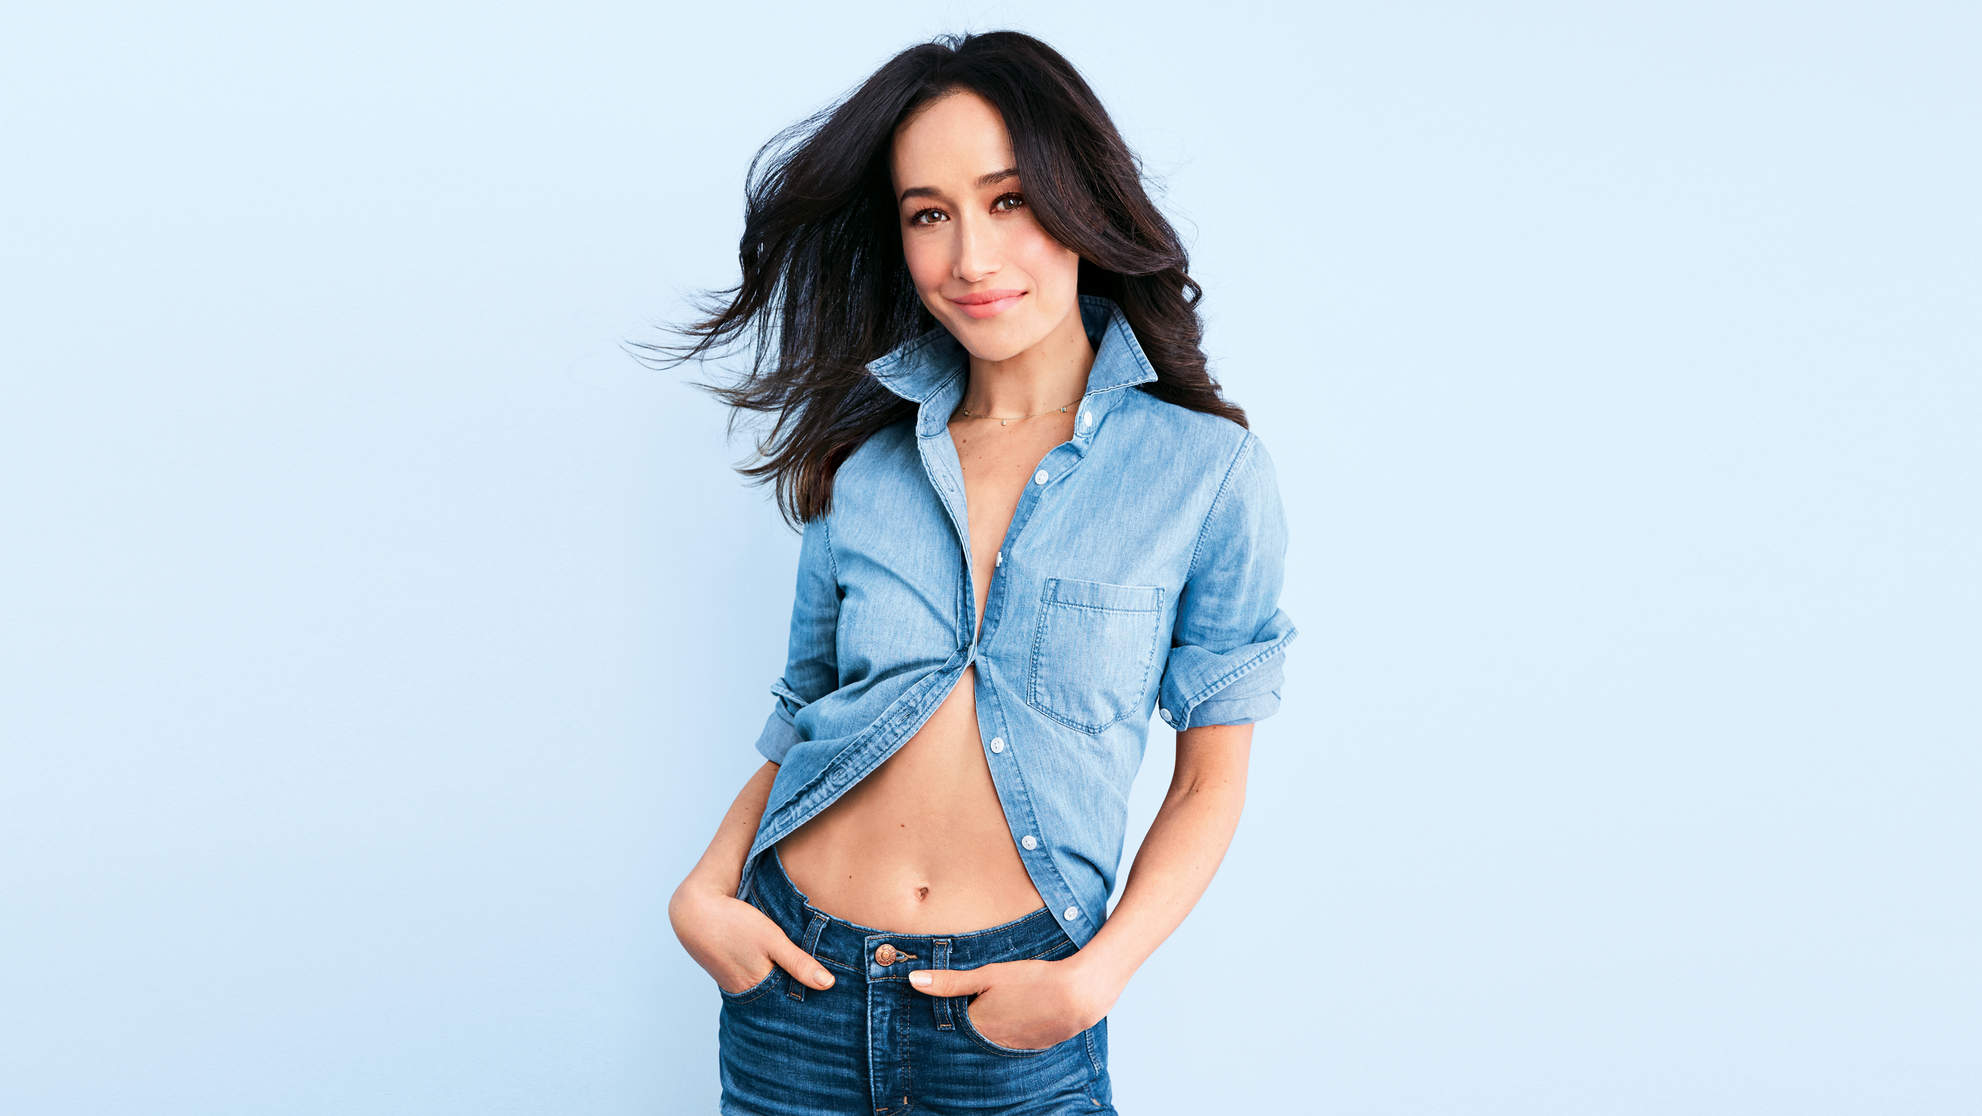 Maggie Q nudes (83 pics), hacked Boobs, YouTube, lingerie 2017